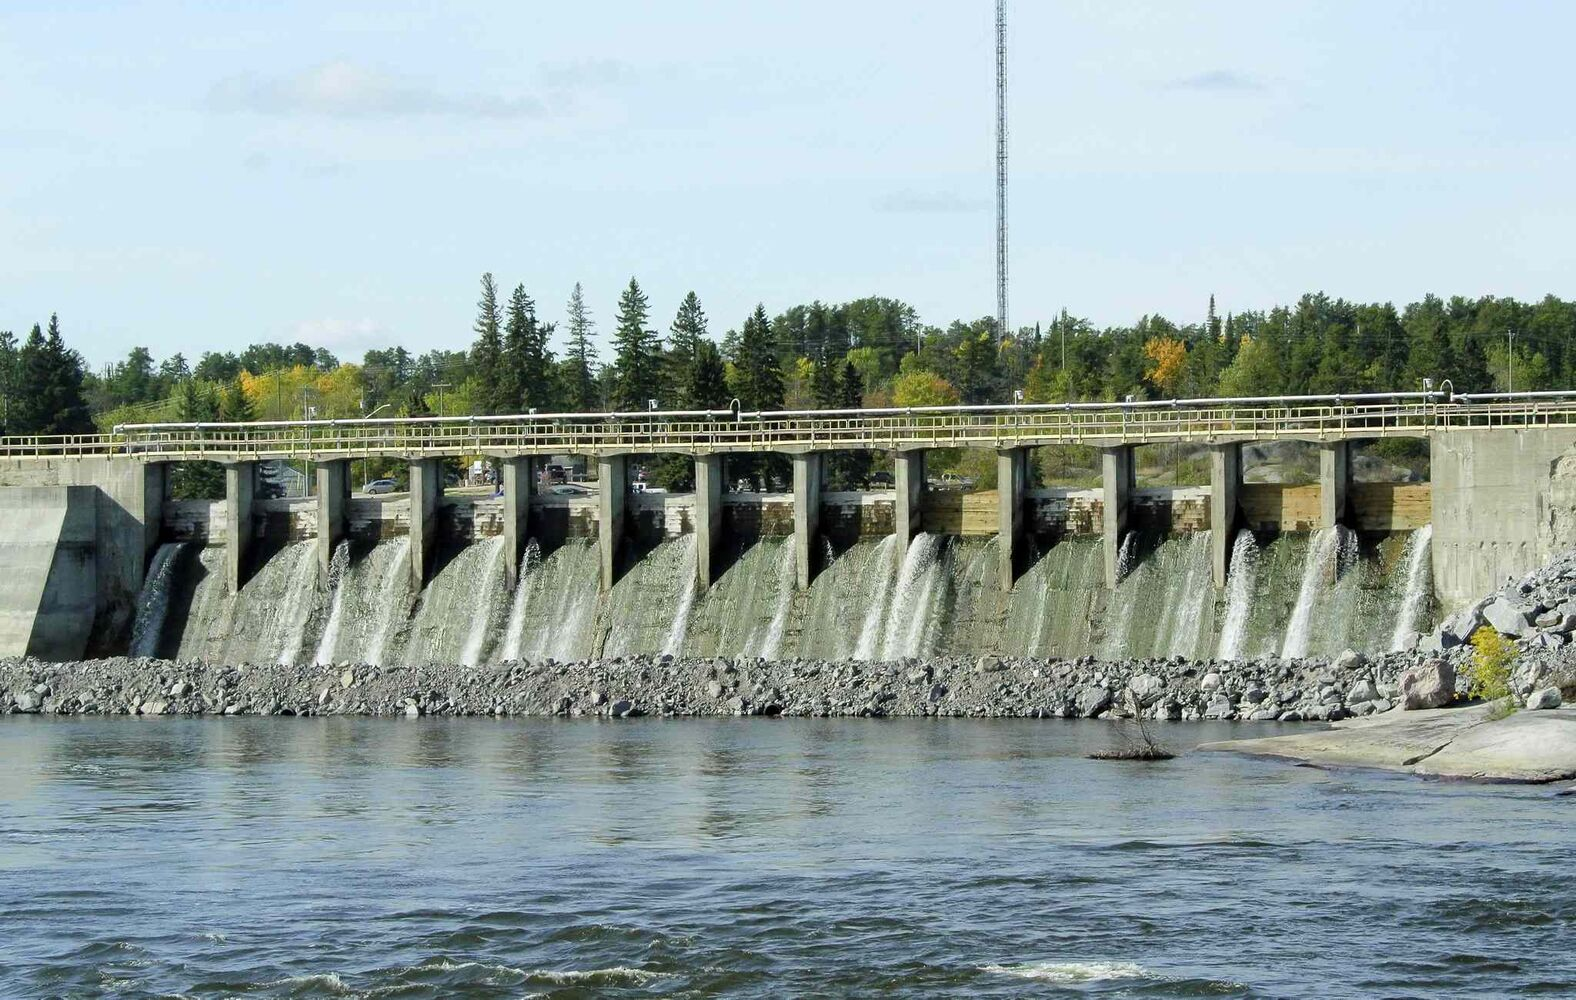 The old spillway allows water through, but the mechanics on controlling the water is over 100 years old and very dangerous for employees who manage the dam.  MIKE DEAL / WINNIPEG FREE PRESS (MIKE DEAL / WINNIPEG FREE PRESS)